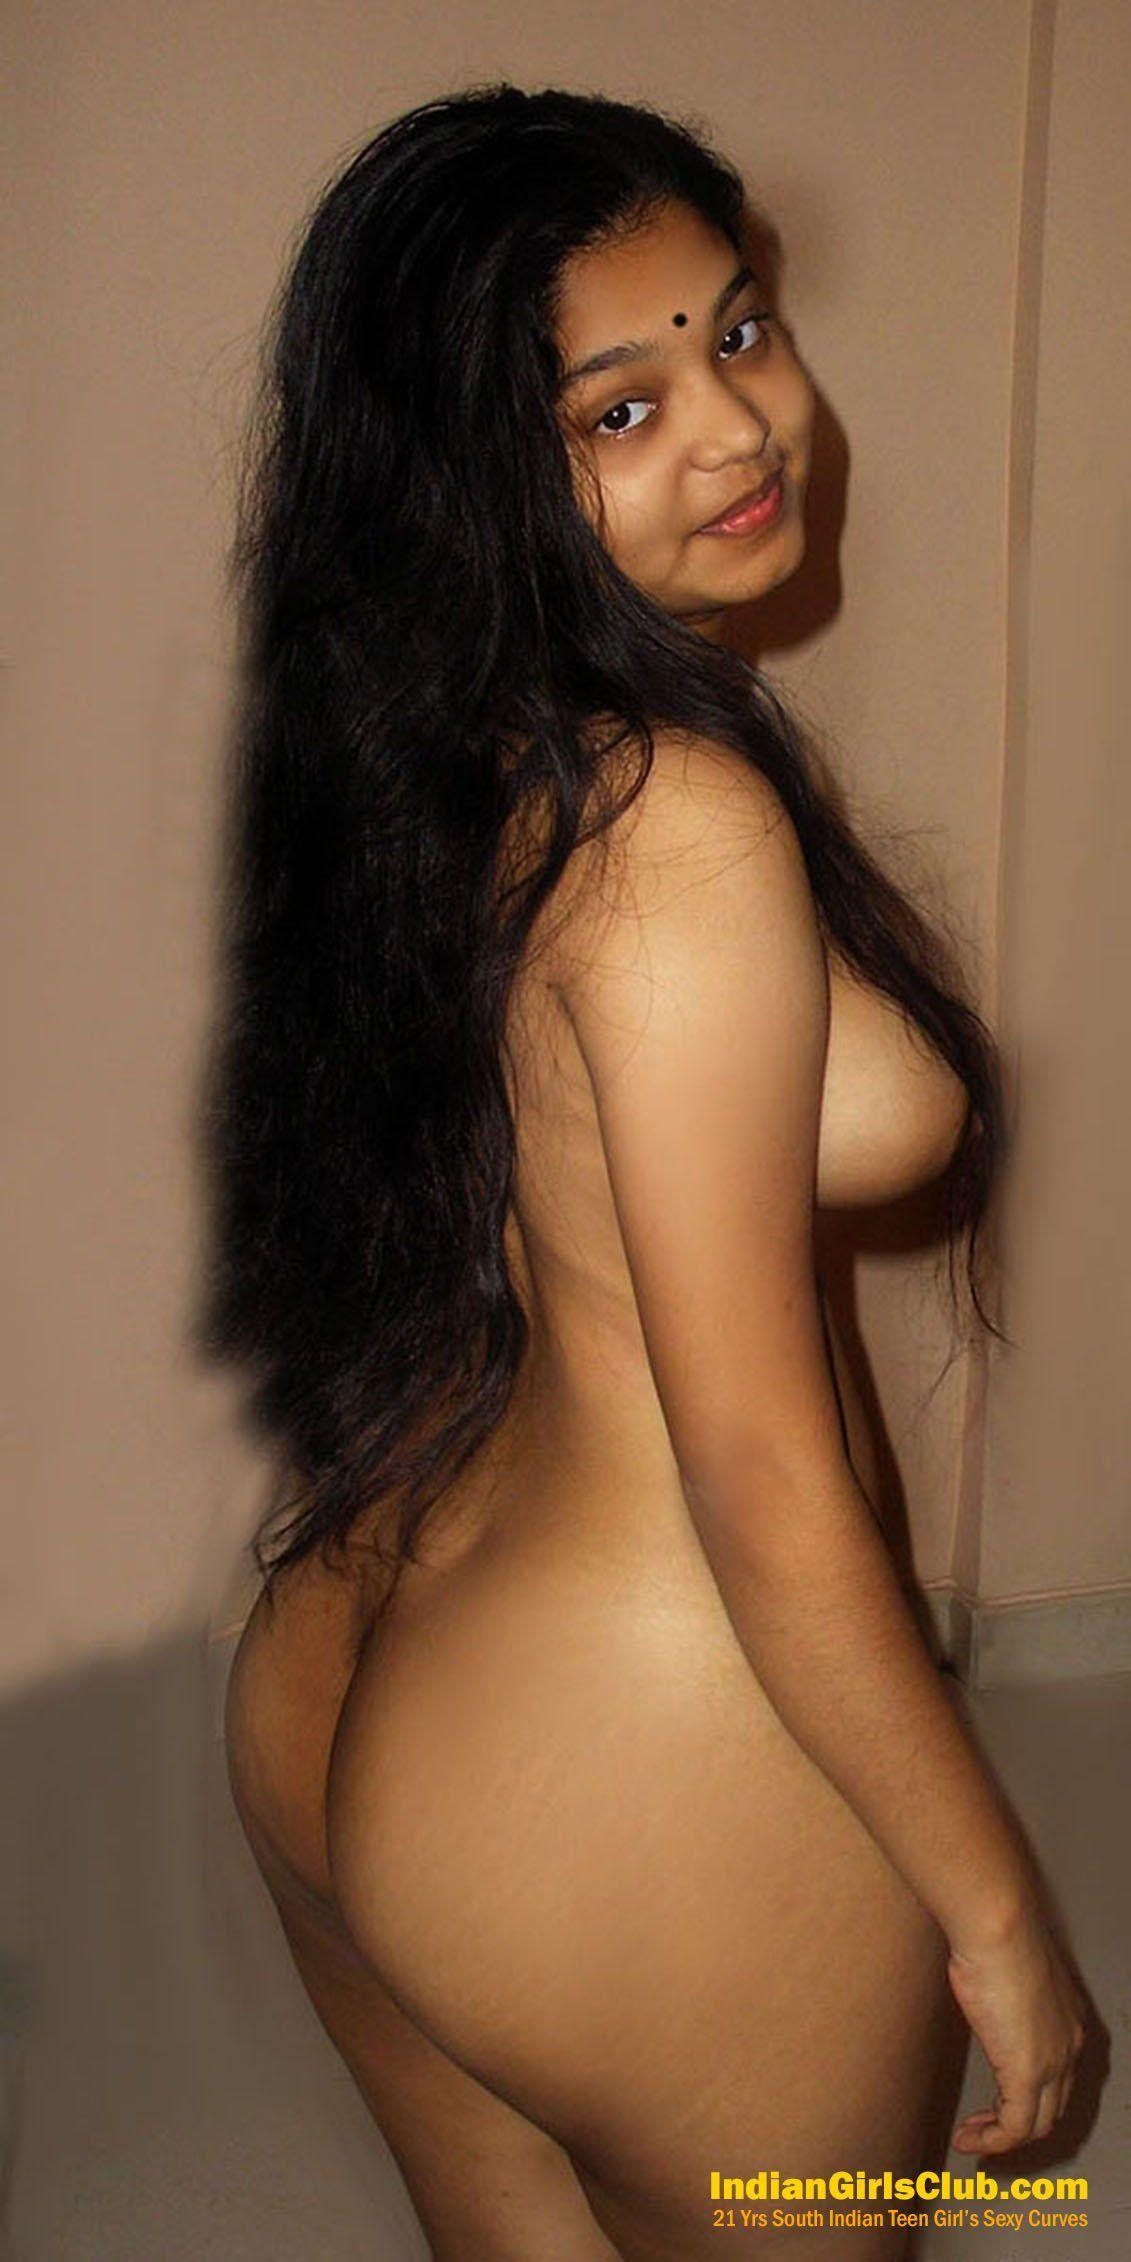 Nude girl on scooters